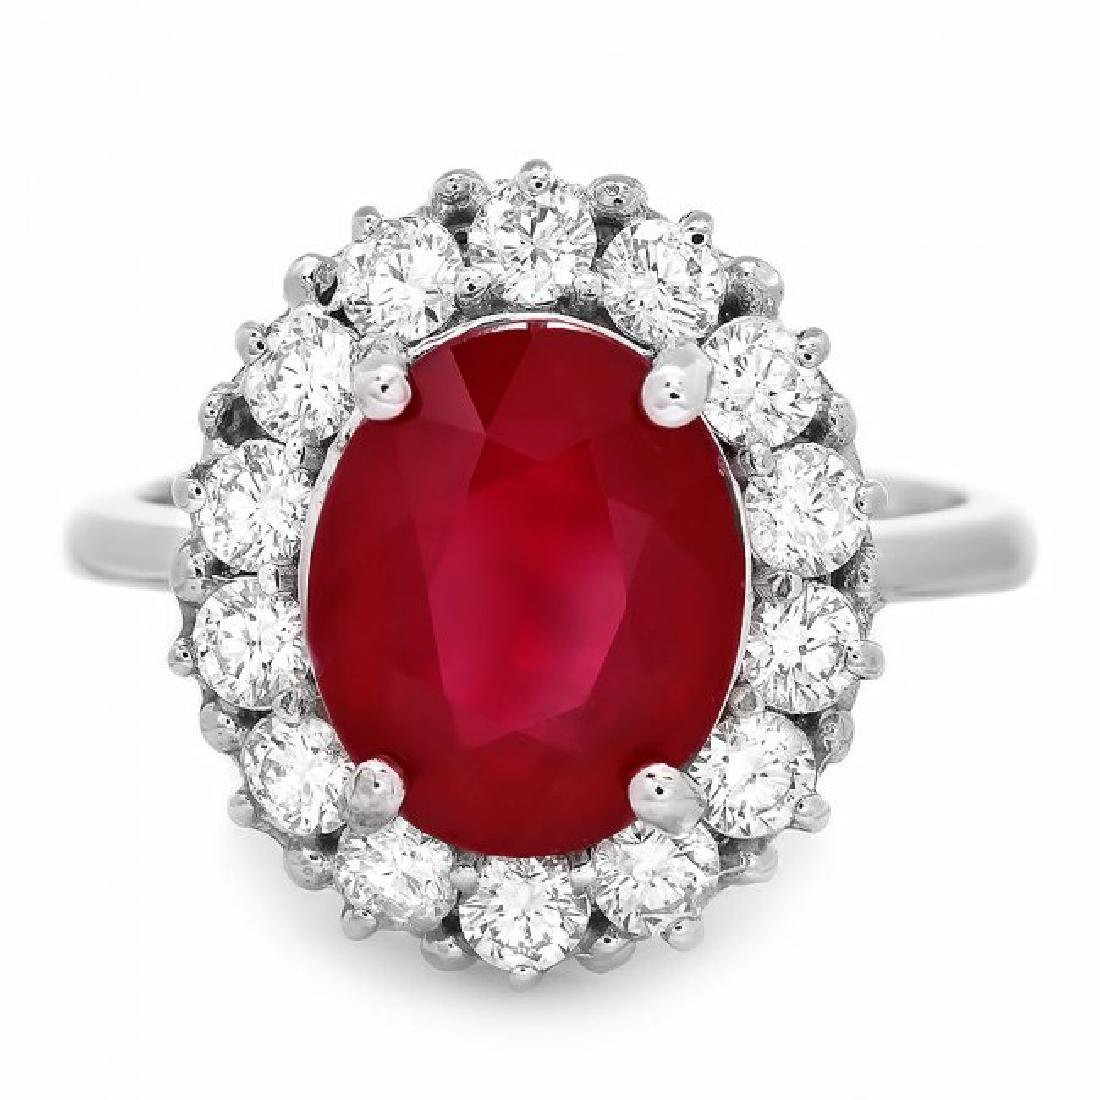 14k White Gold 5.00ct Ruby 1.00ct Diamond Ring - 2